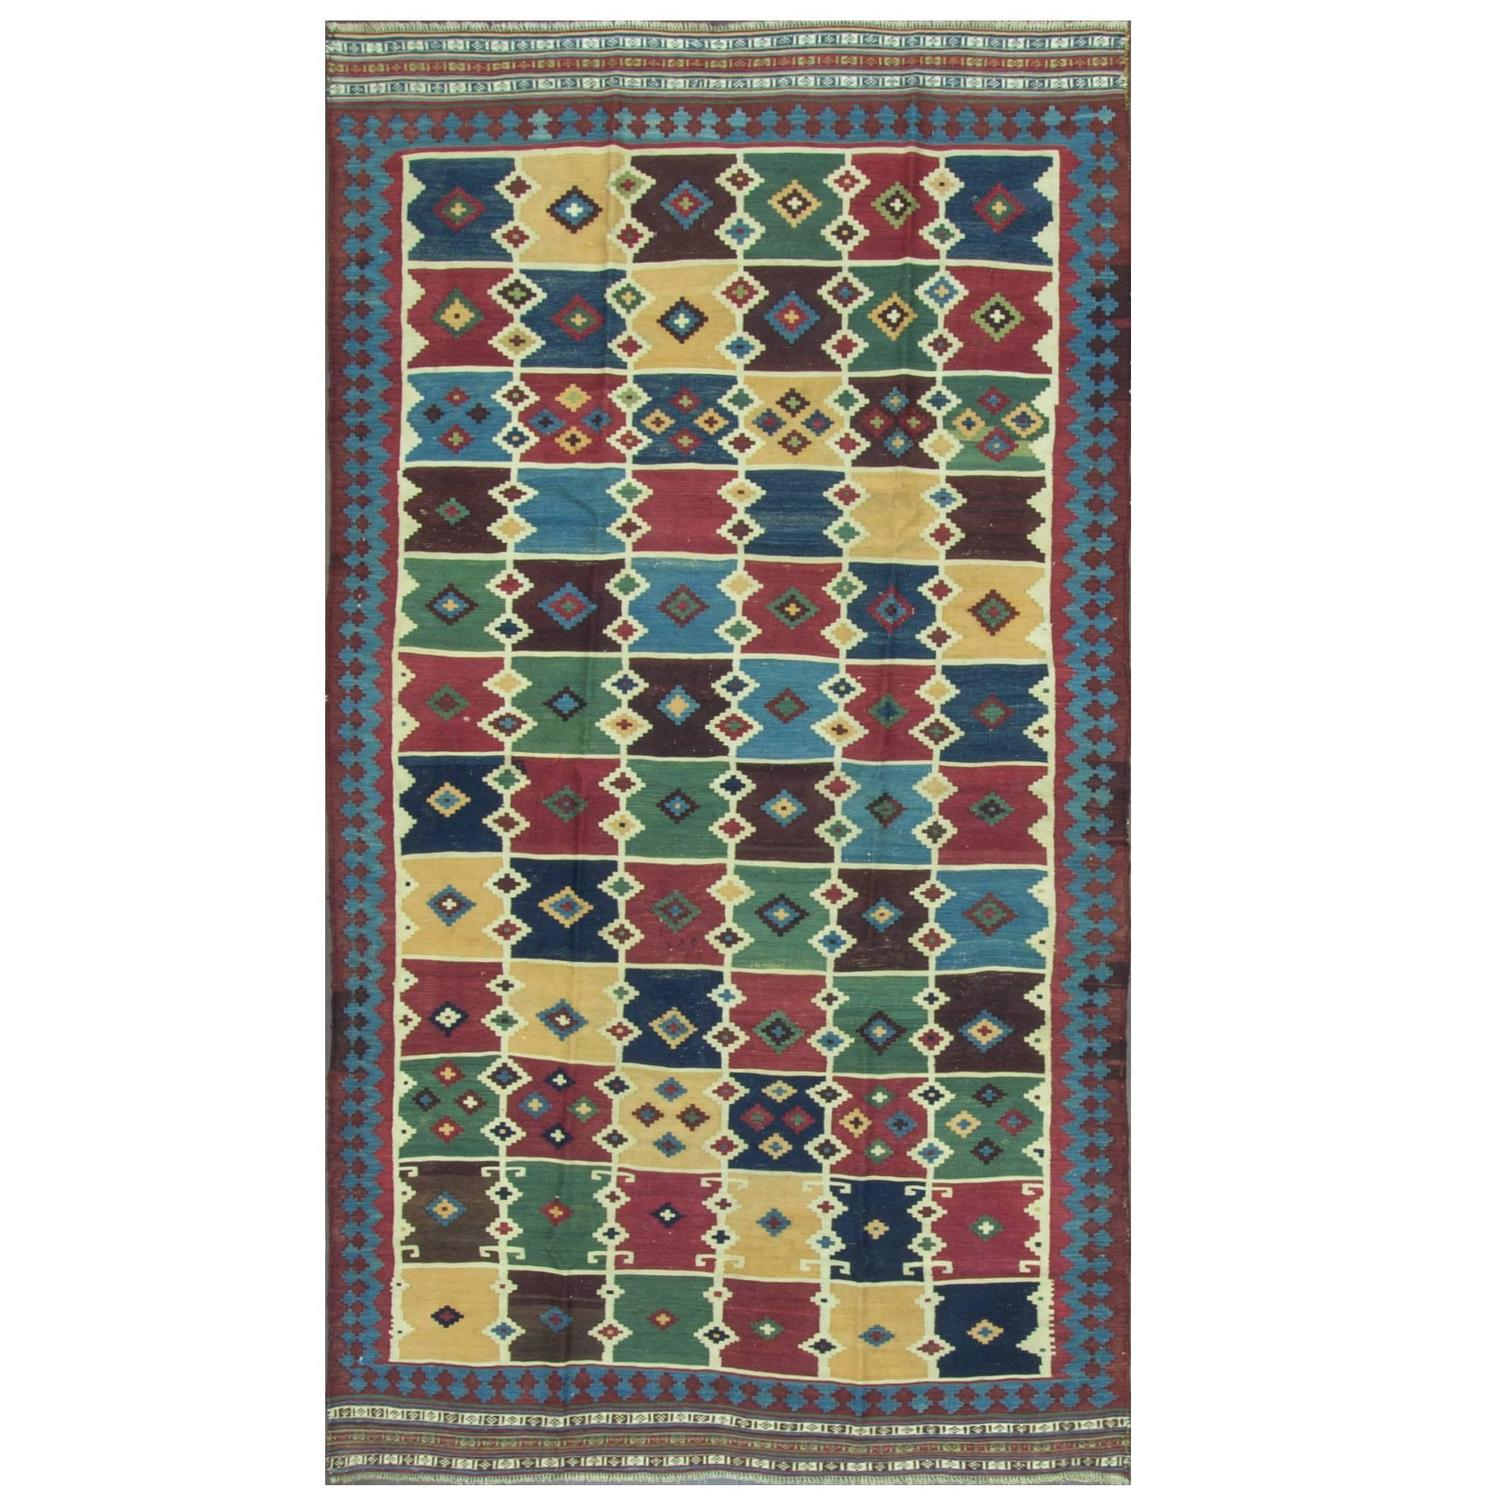 Unique Qashqai Kilim For Sale At 1stdibs